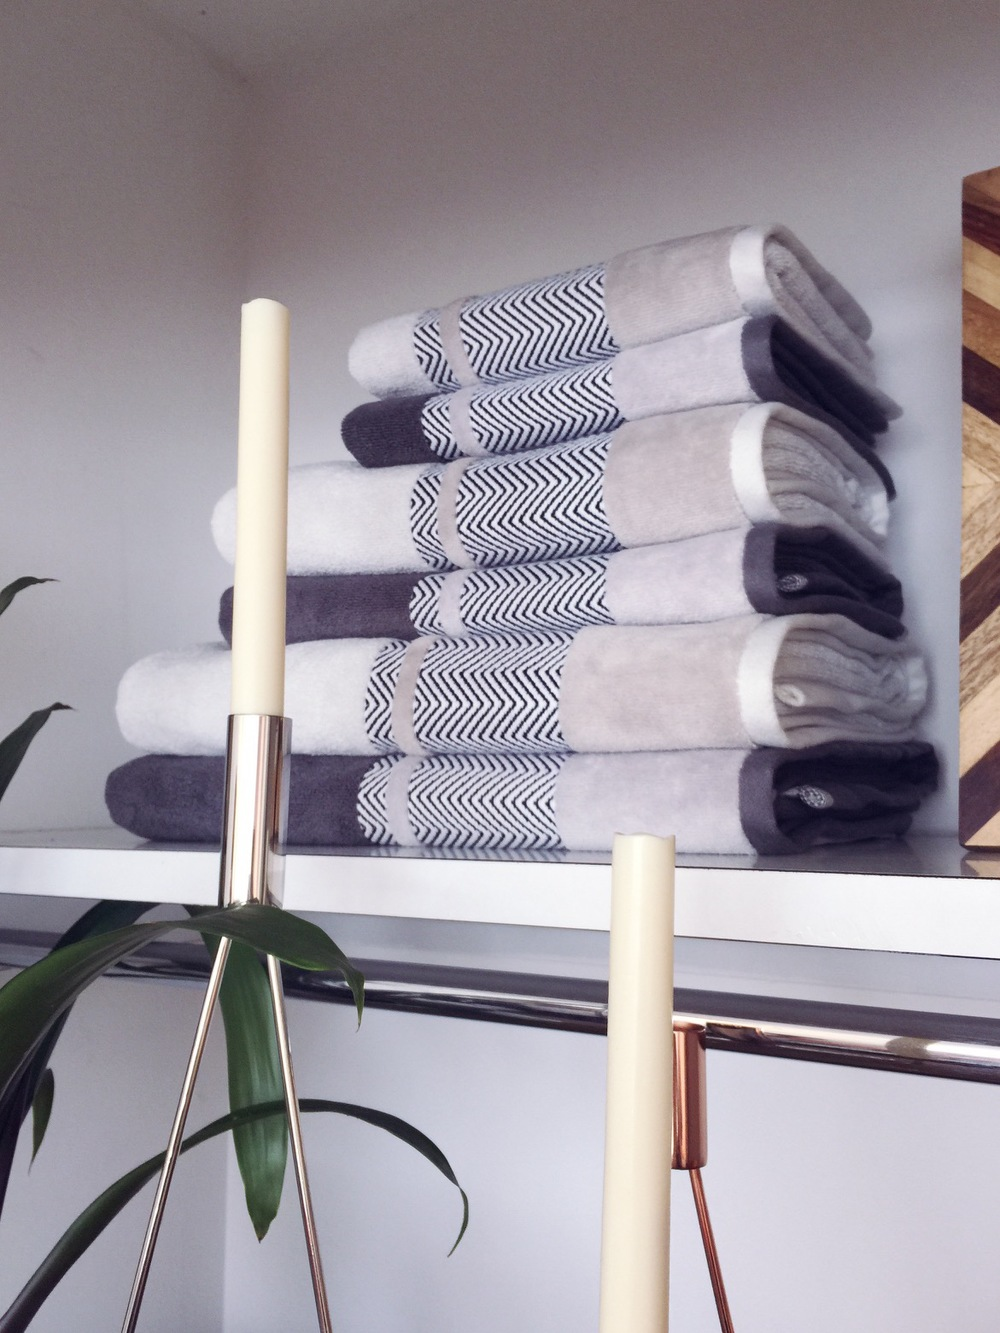 monochrome towels